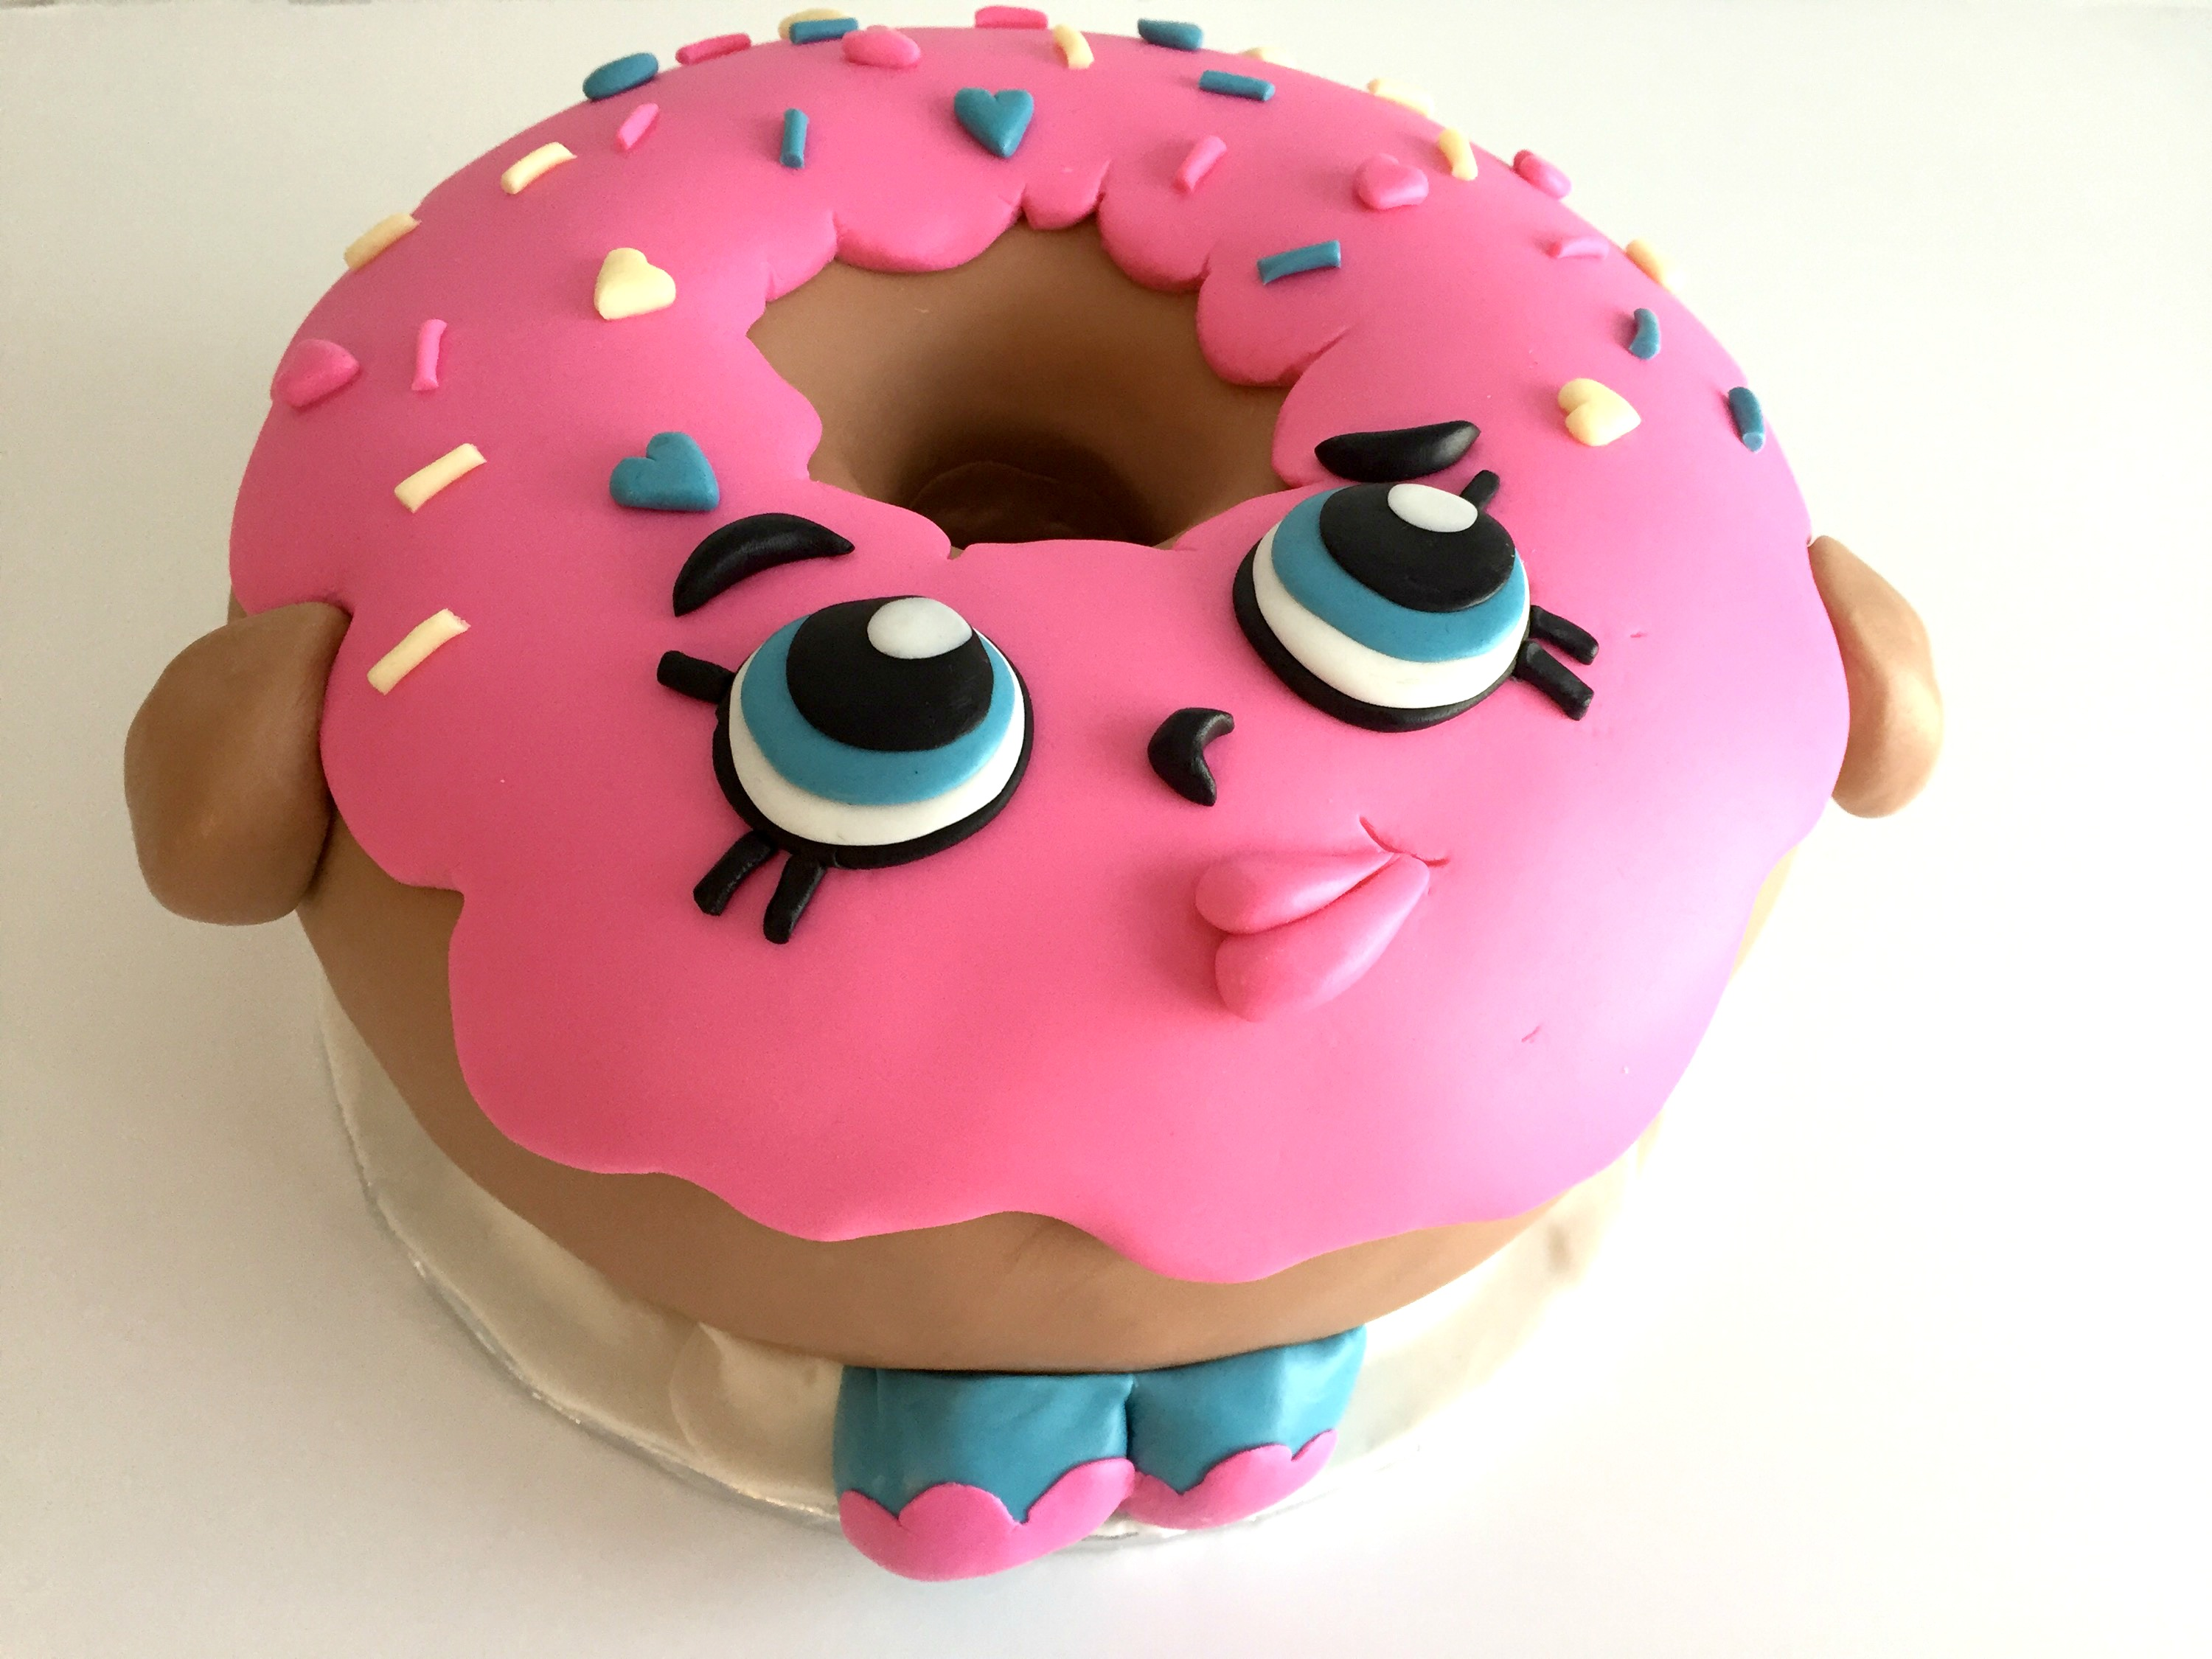 10 Adorable Shopkins Cakes